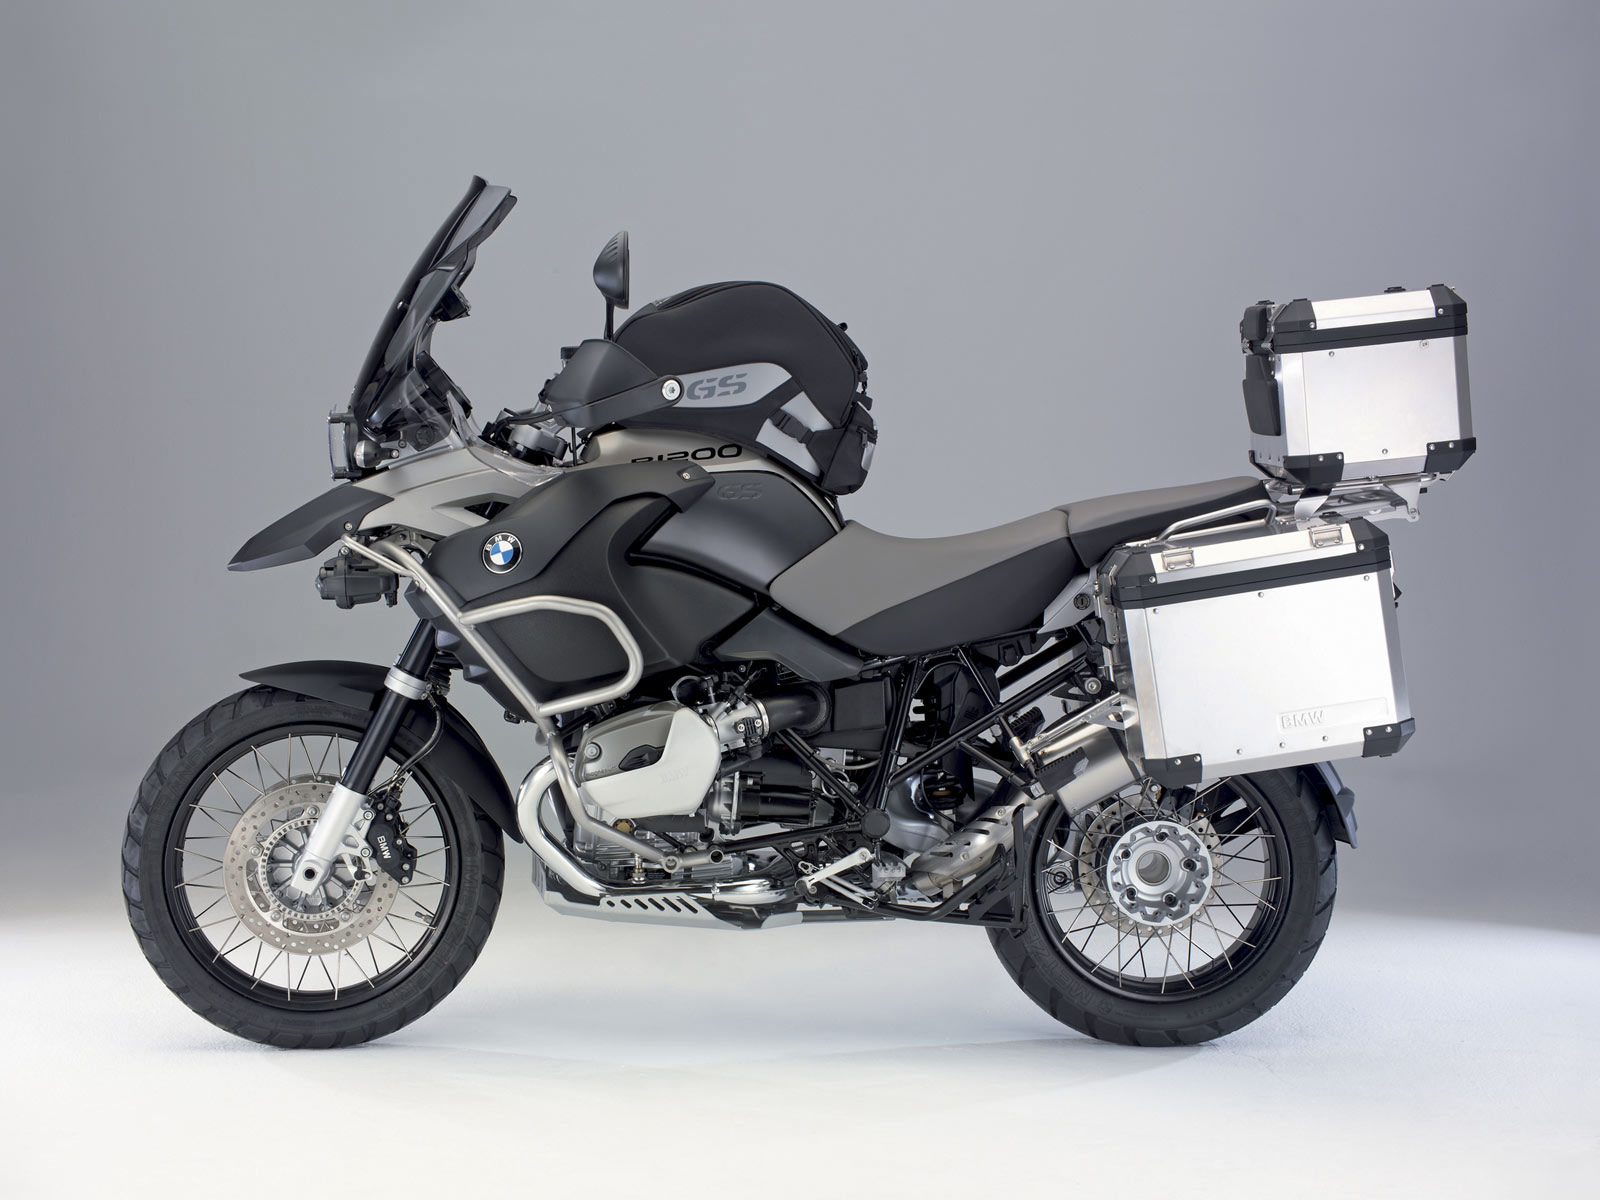 Wallpaper Bmw Gs 1200 Adventure Best Wallpaper